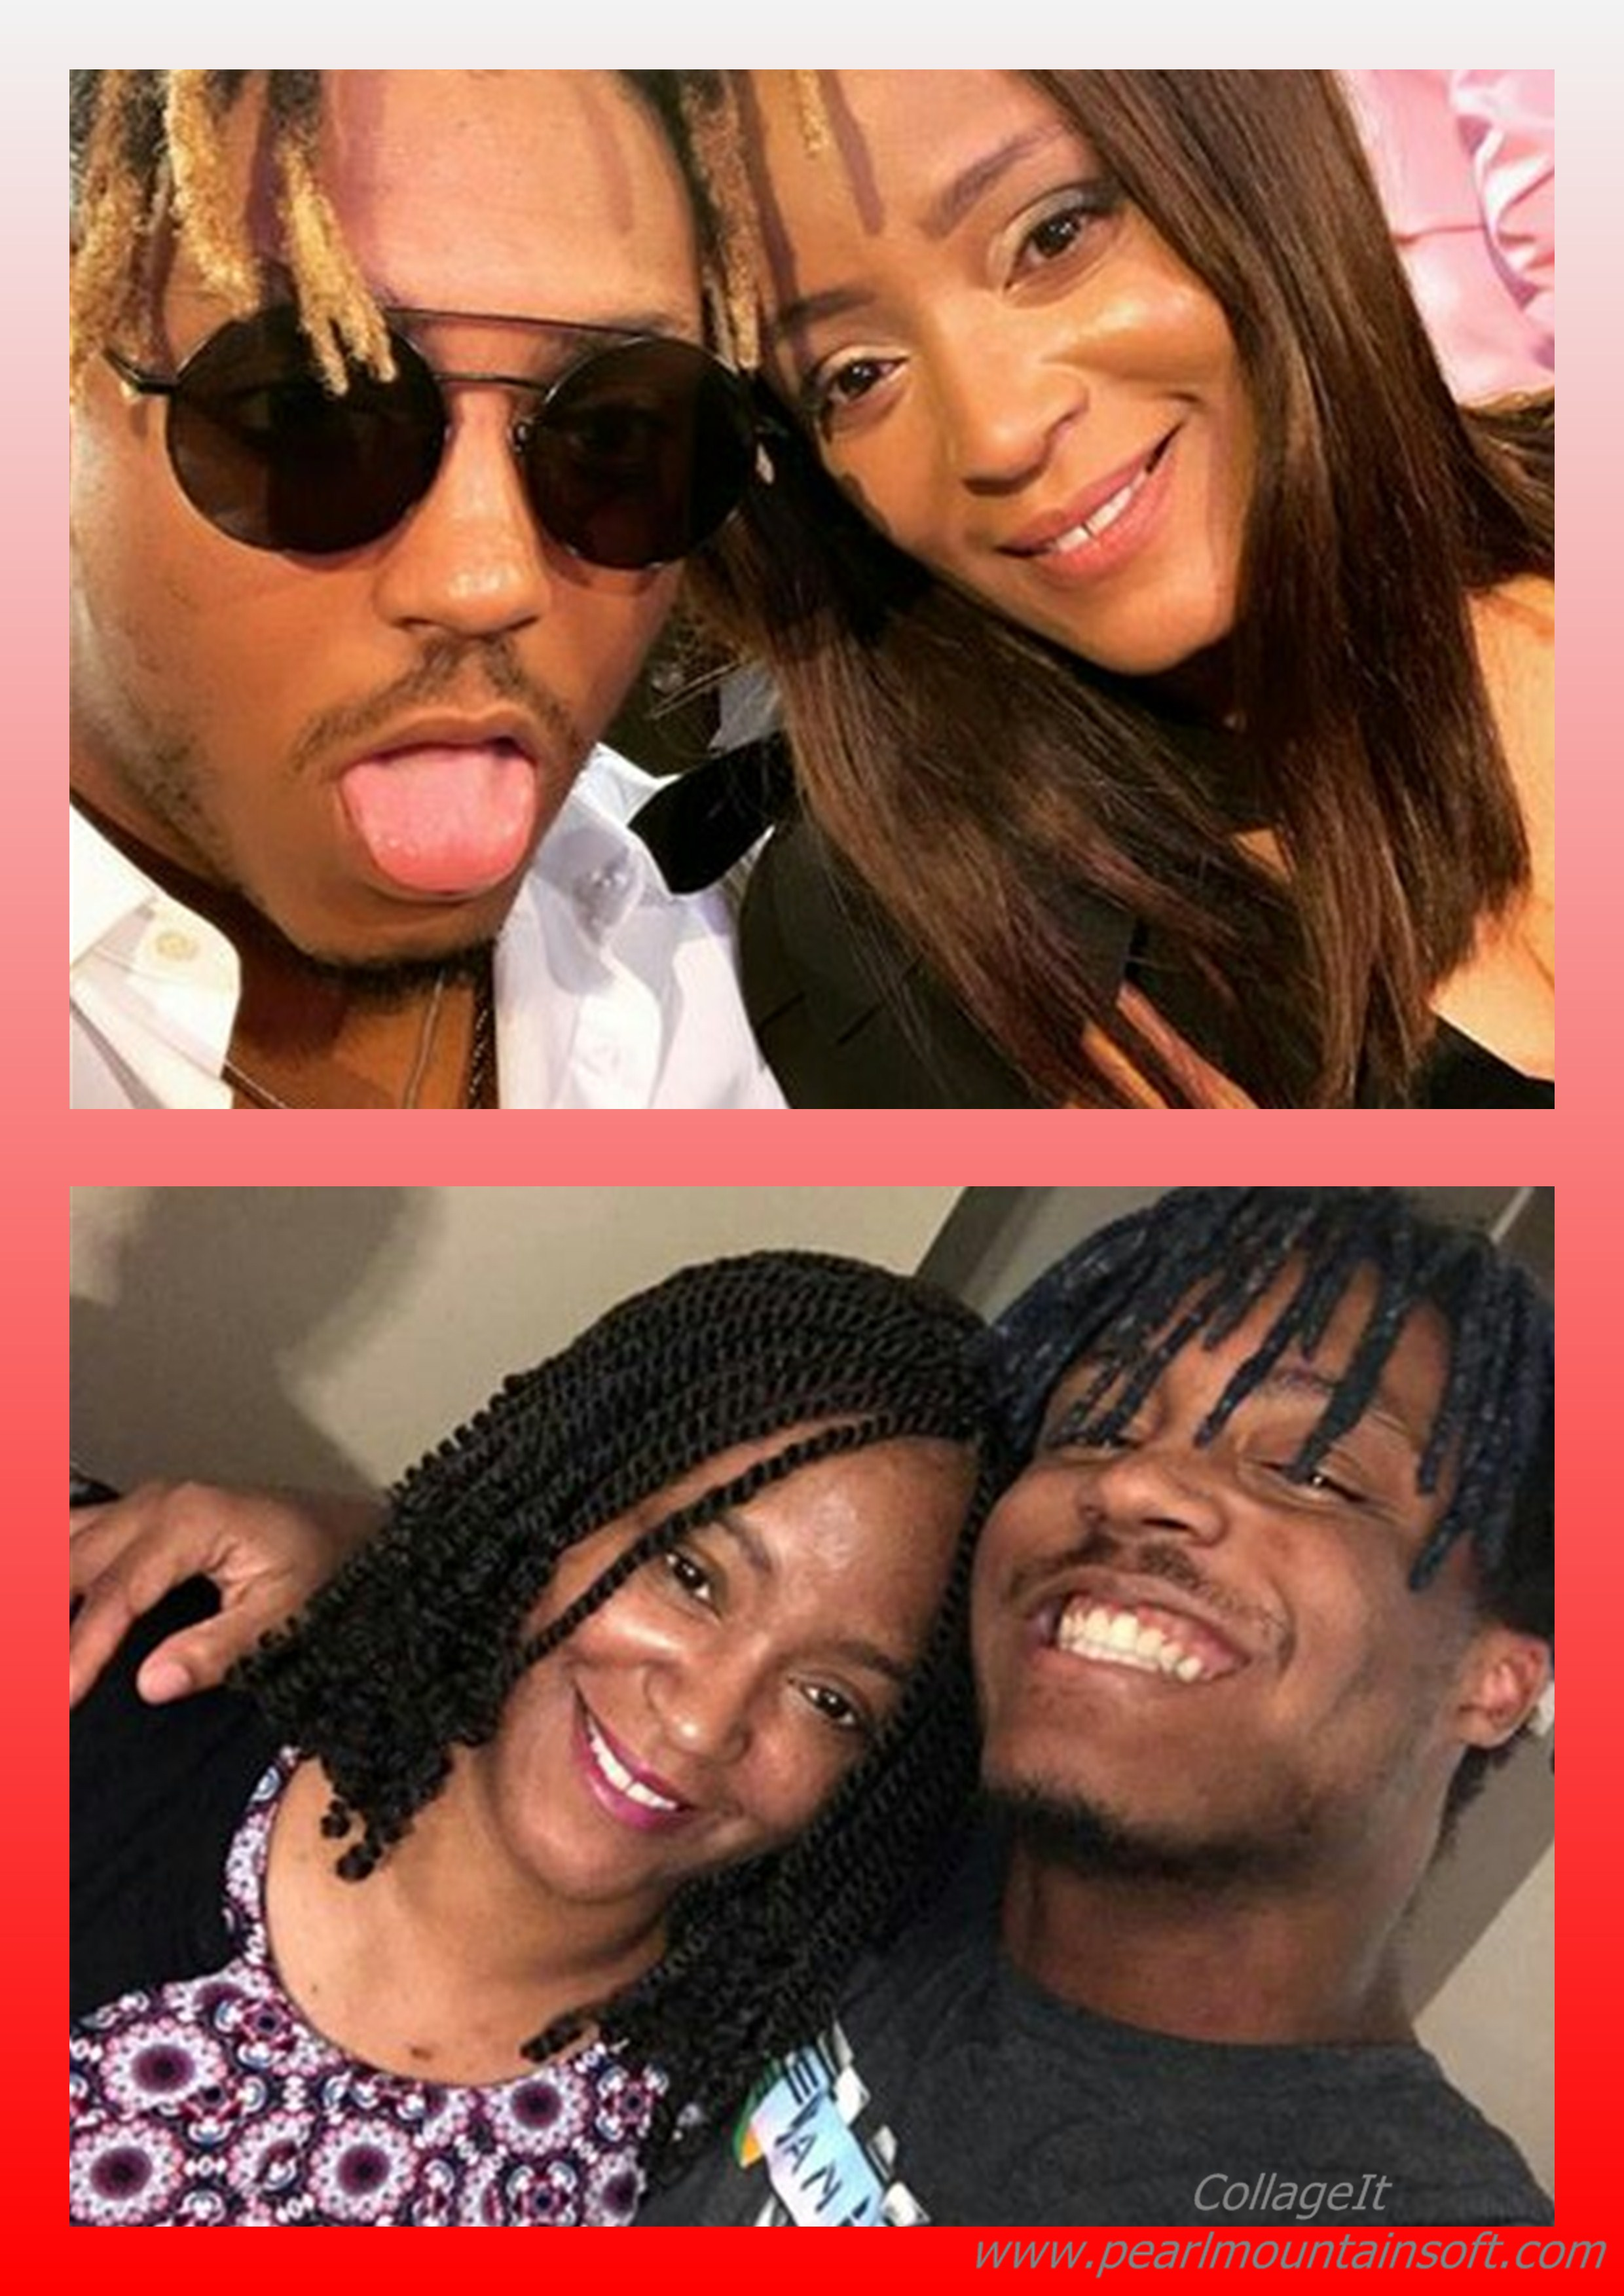 UNKNOWN AND HIDDEN FACTS ABOUT CARMELA WALLACE, THE MOTHER OF LATE RAPPER~JARED ANTHONY HIGGINS AKA JUICE WRLD